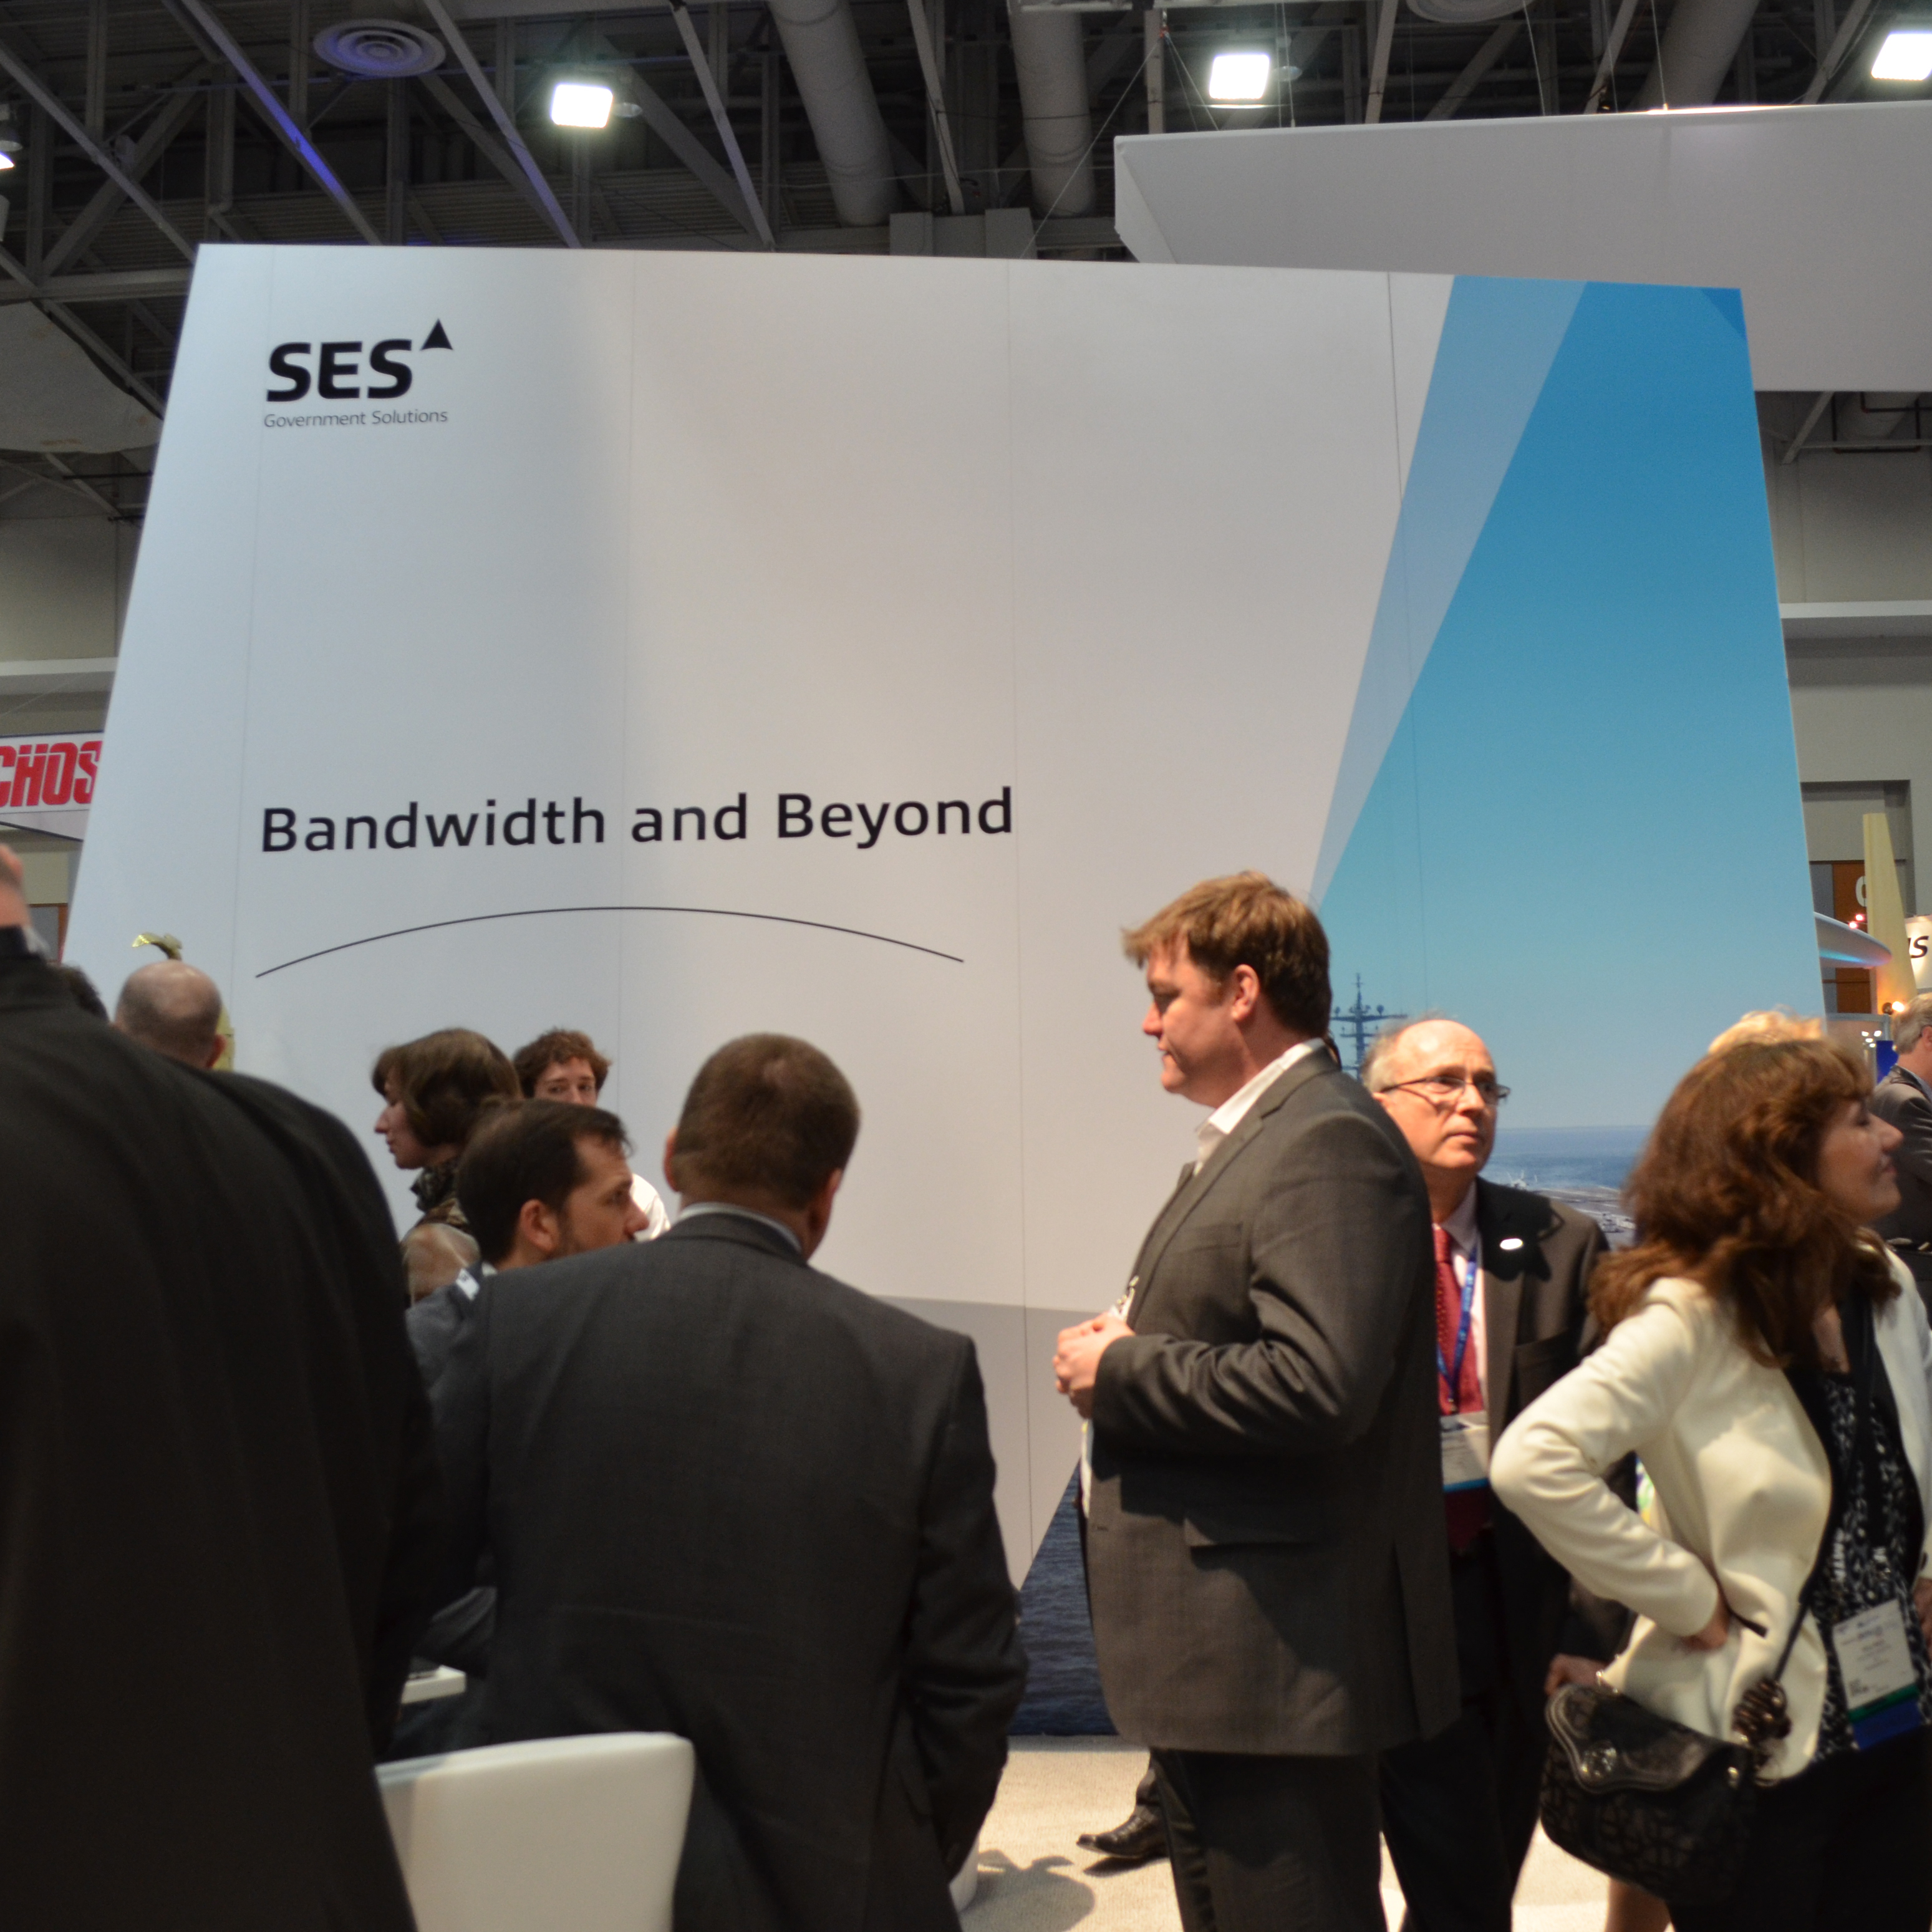 SES Booth